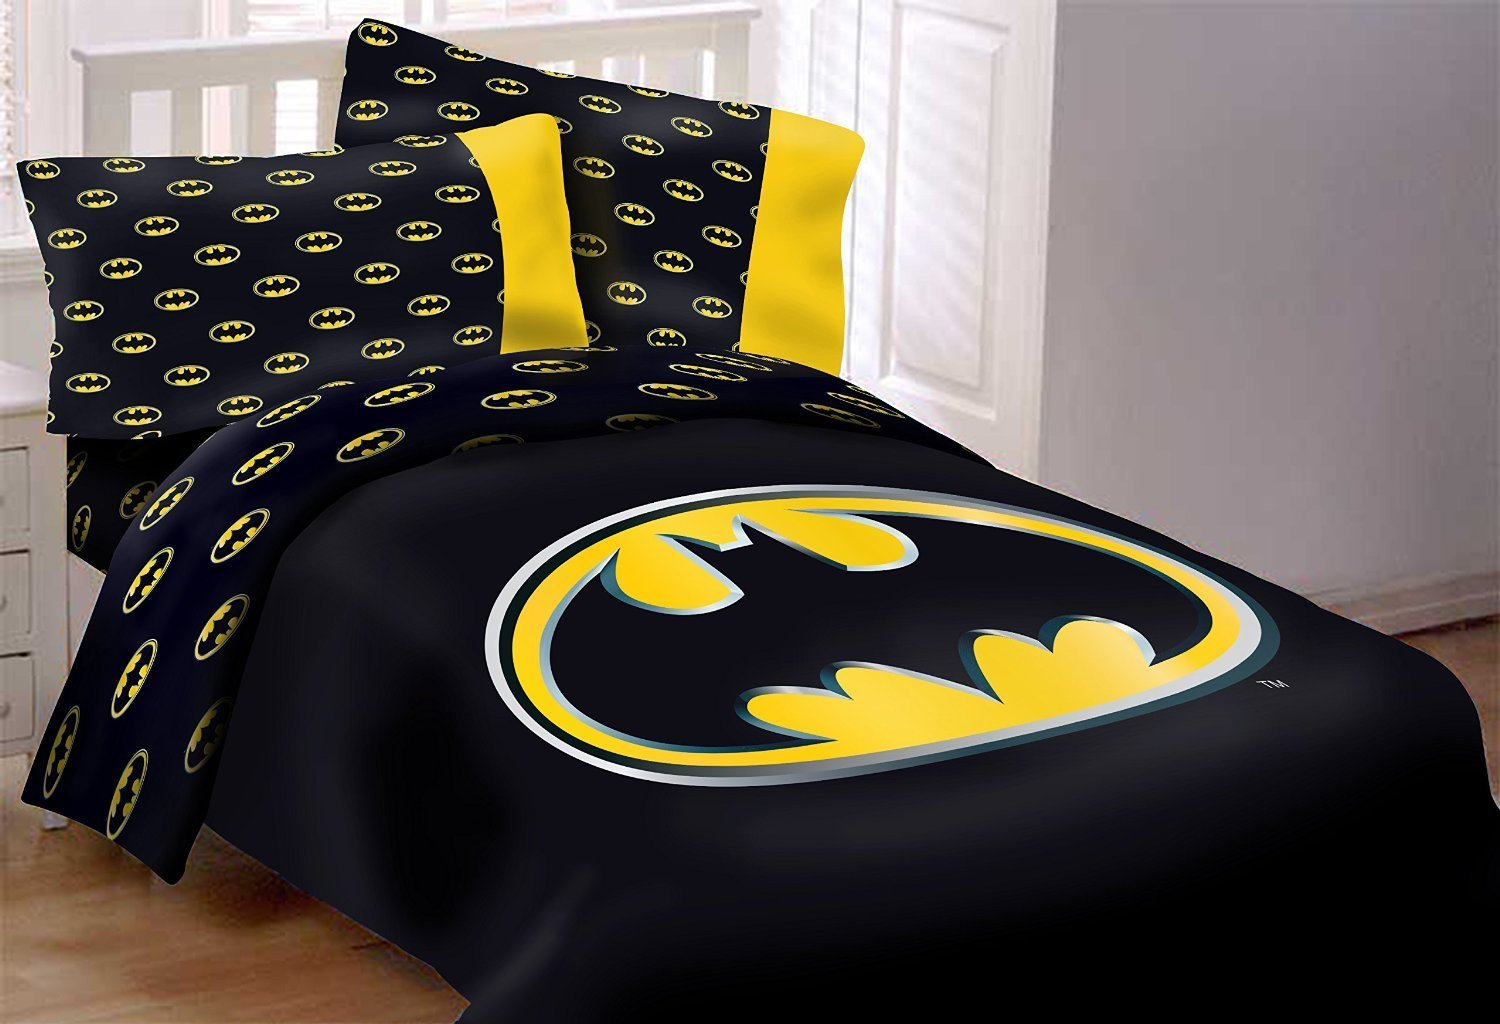 Batman bedding set 4Pcs for toddlers